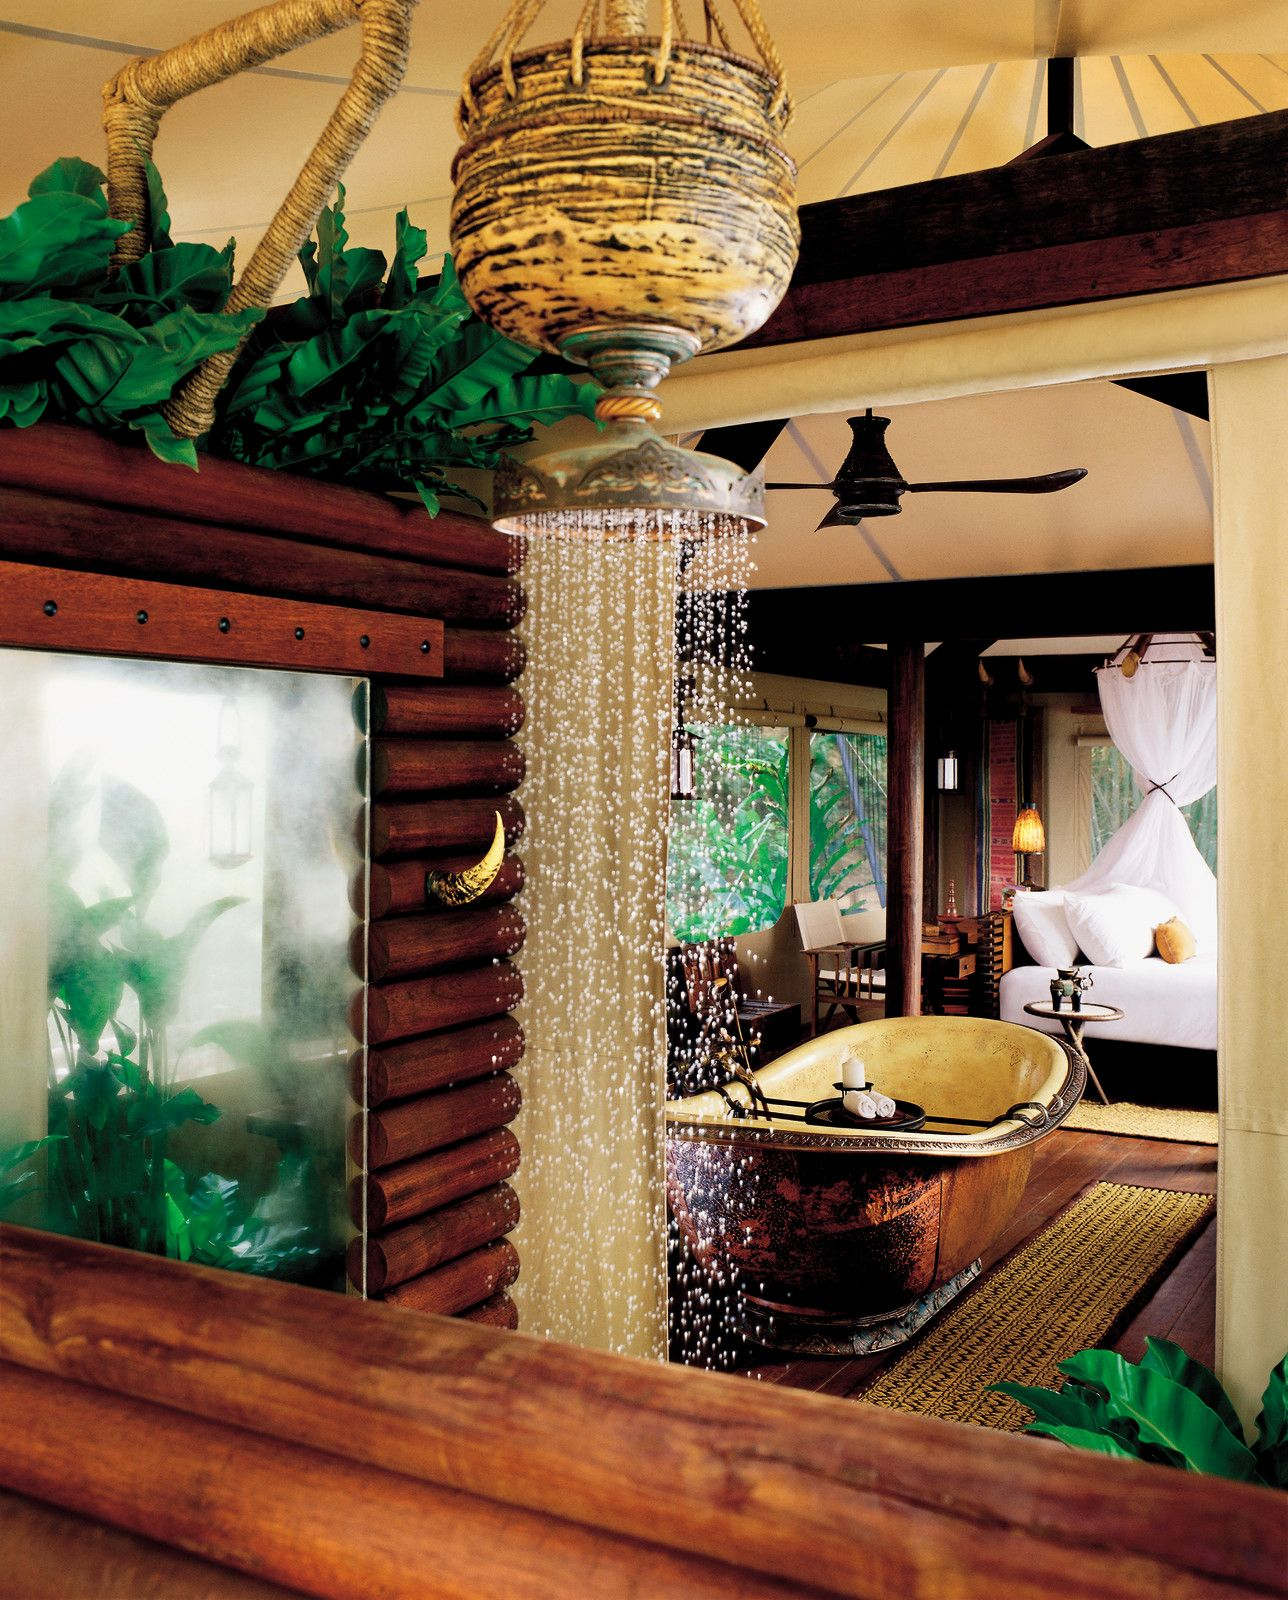 Outdoor Showers And A Tented Tub Ensure That Each Guest Has Options At @Four Seasons Tented Camp